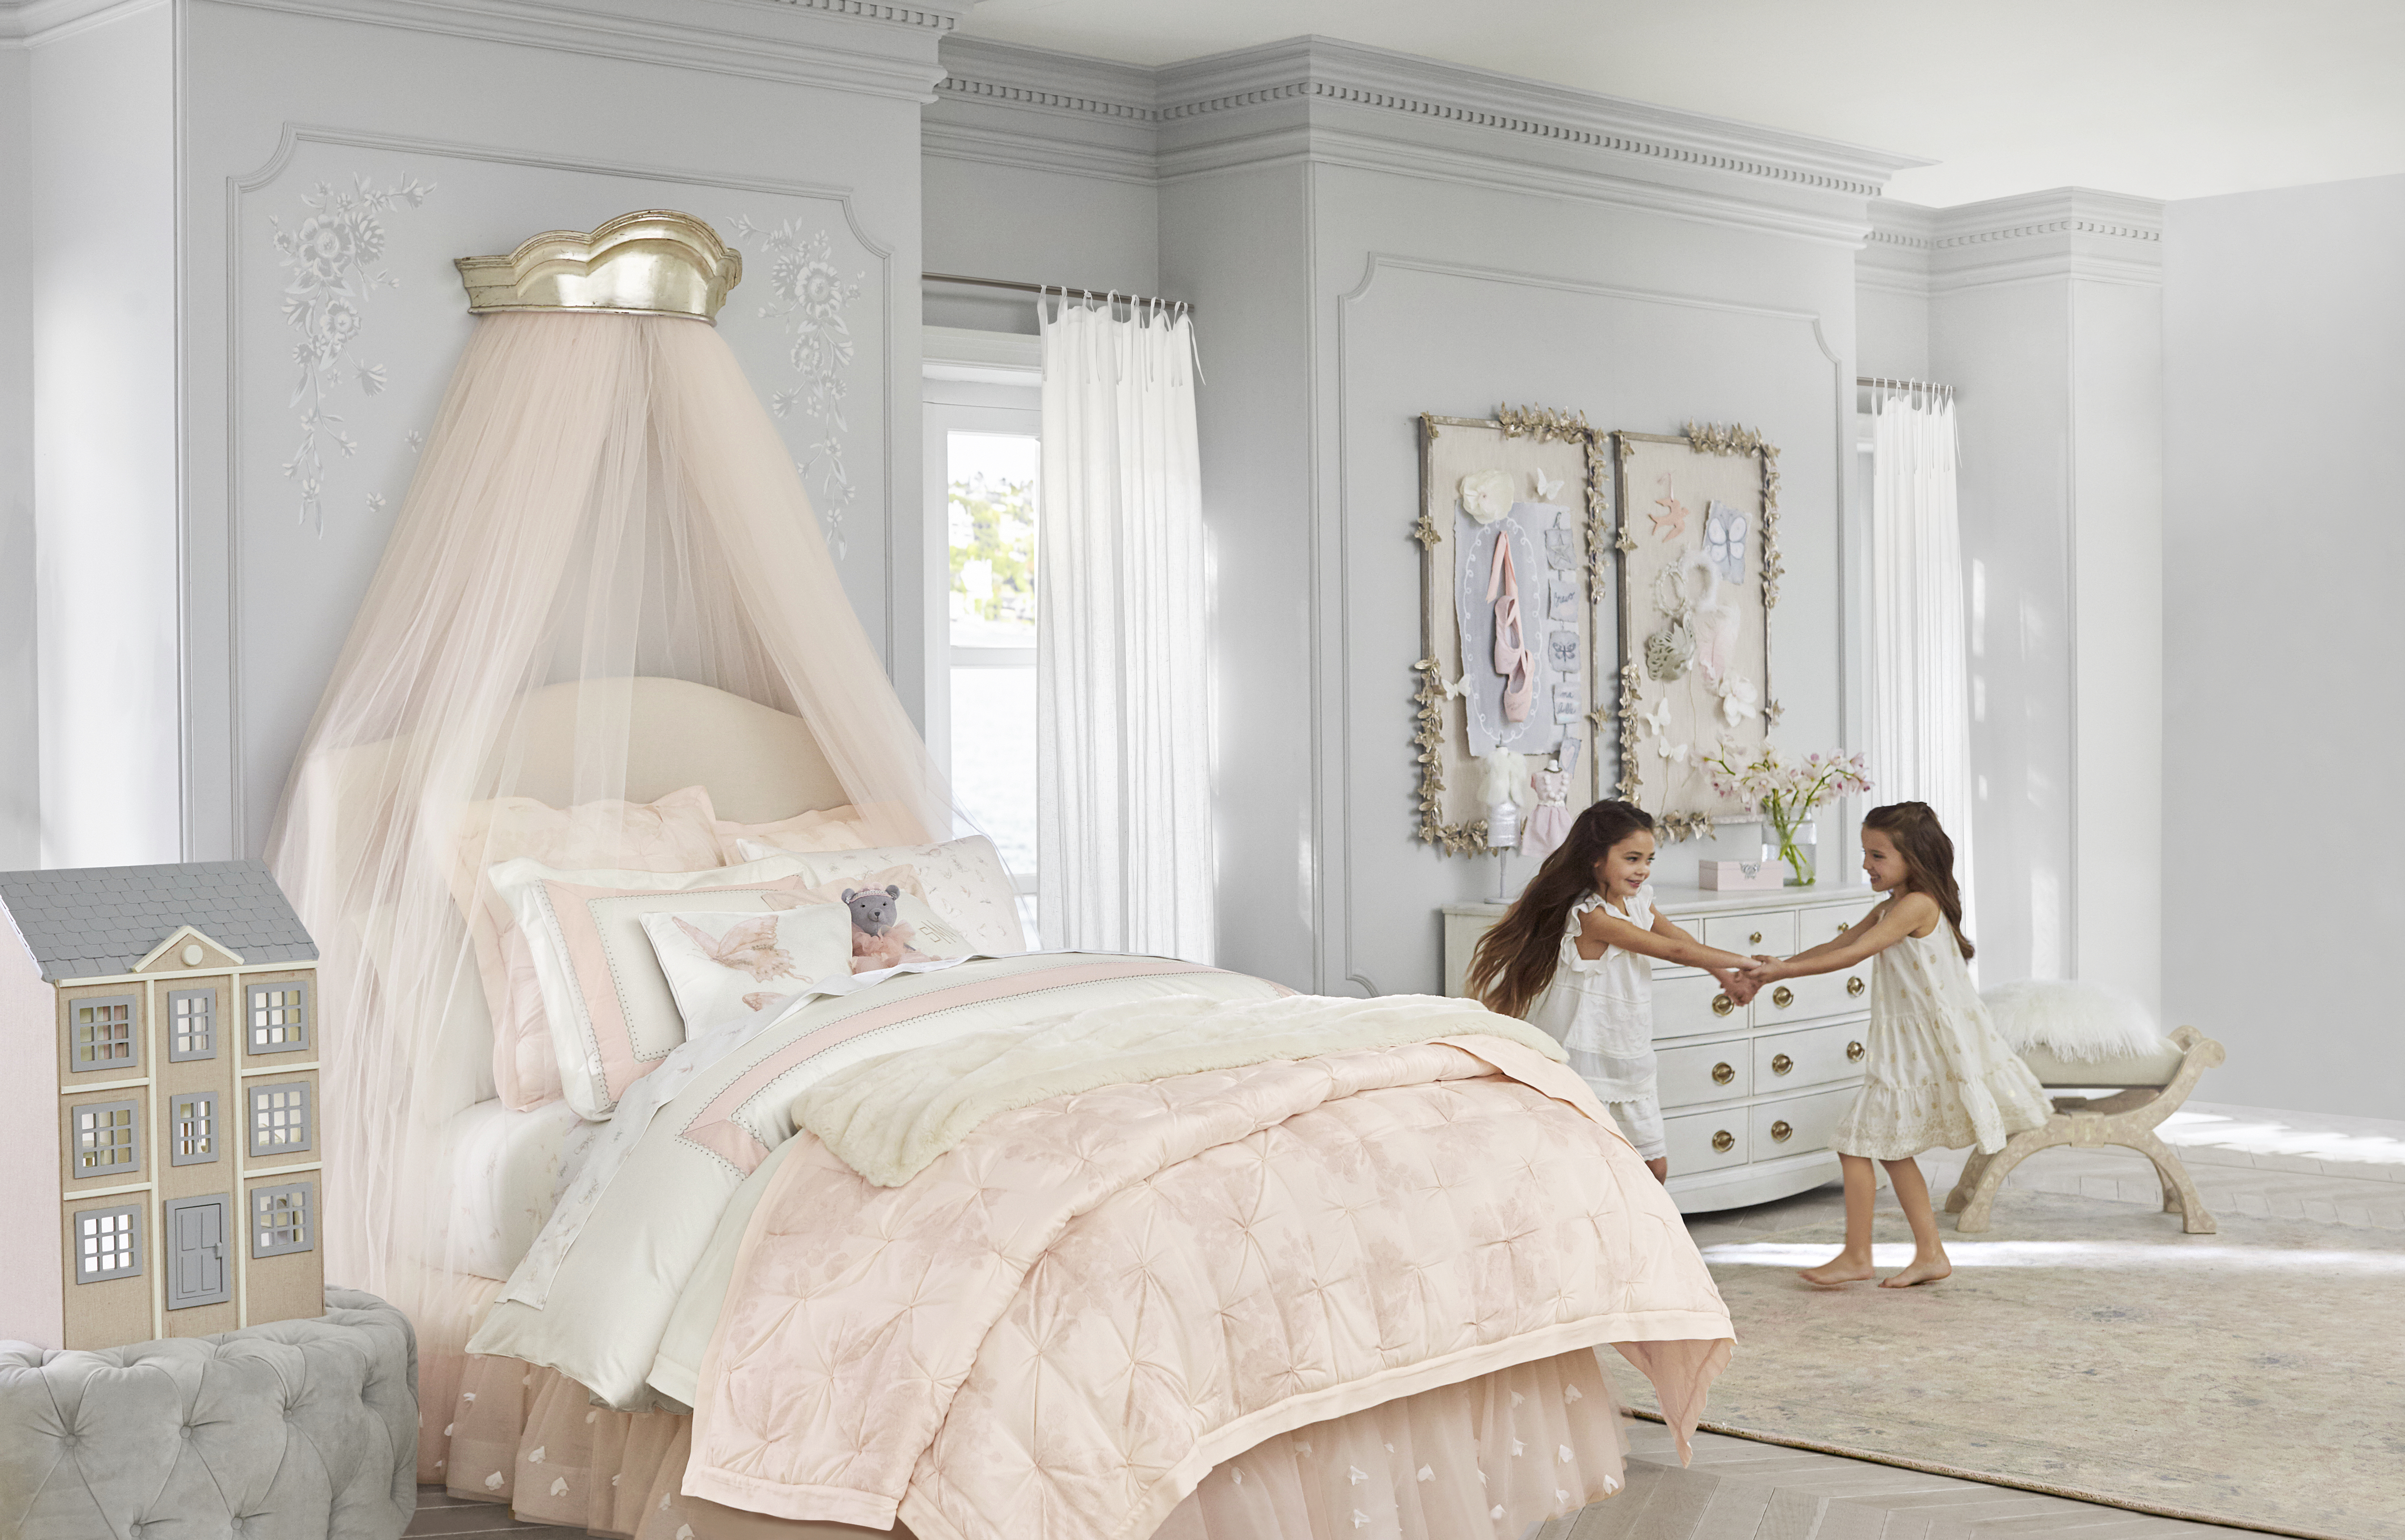 POTTERY BARN KIDS UNVEILS EXCLUSIVE COLLABORATION WITH ...